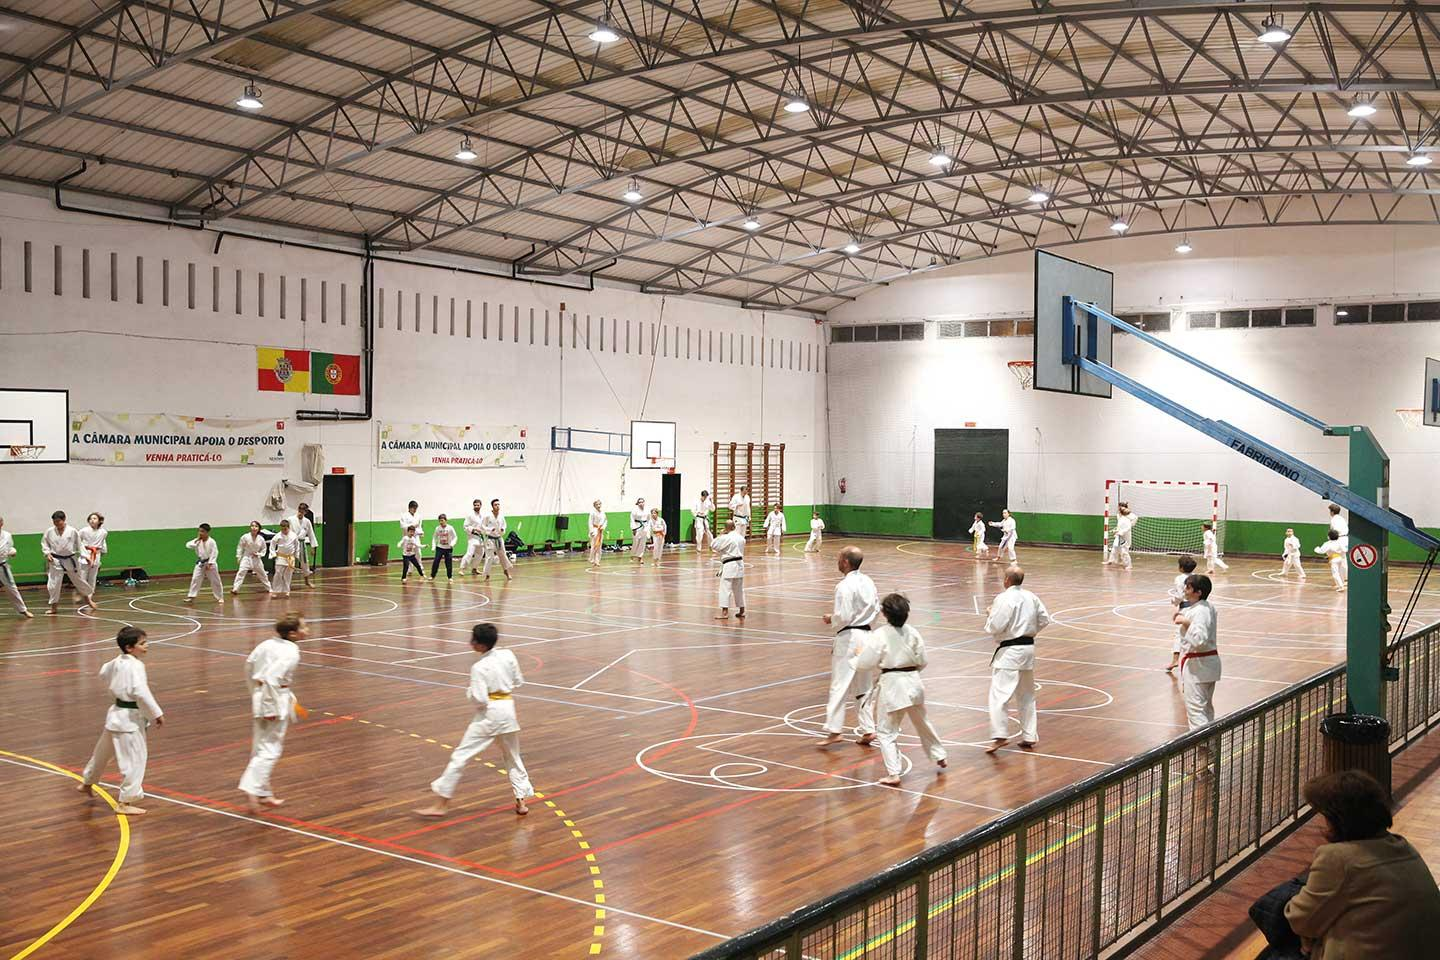 Schréder sports lighting solution has improved visibility in Alcochete Municipal Pavilion, providing a much better facility for the local community